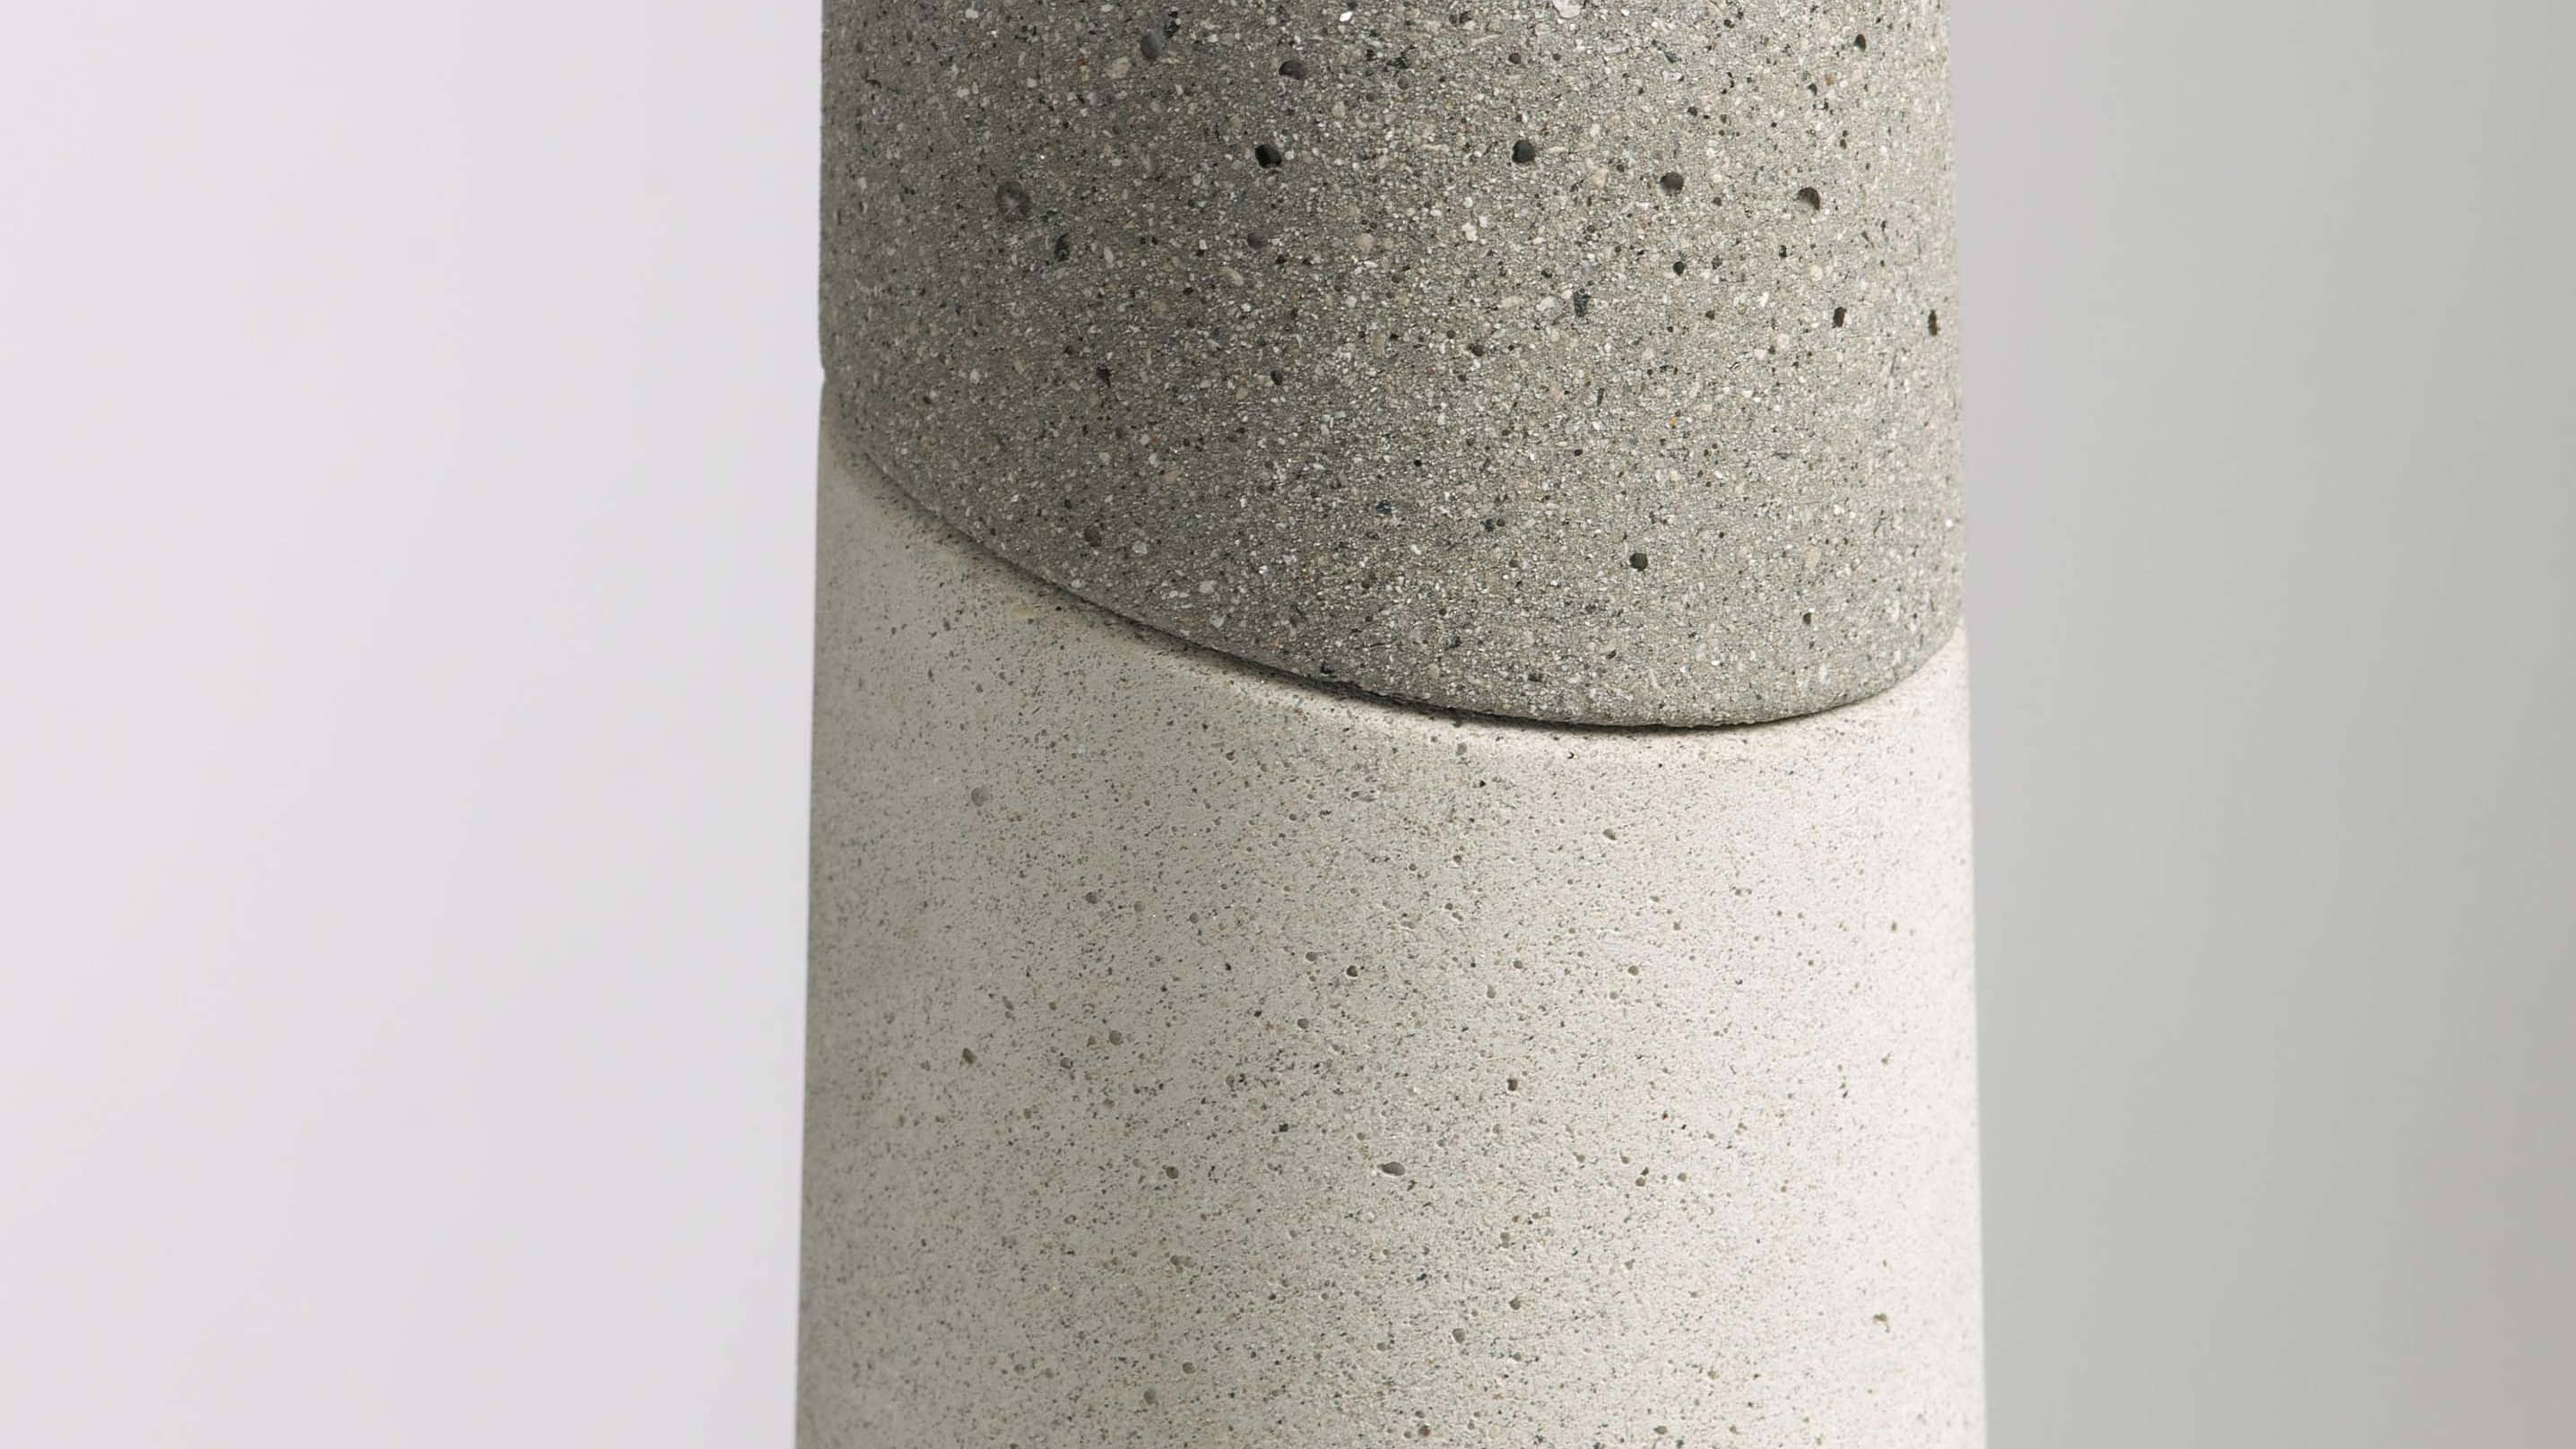 close up of coda bollard